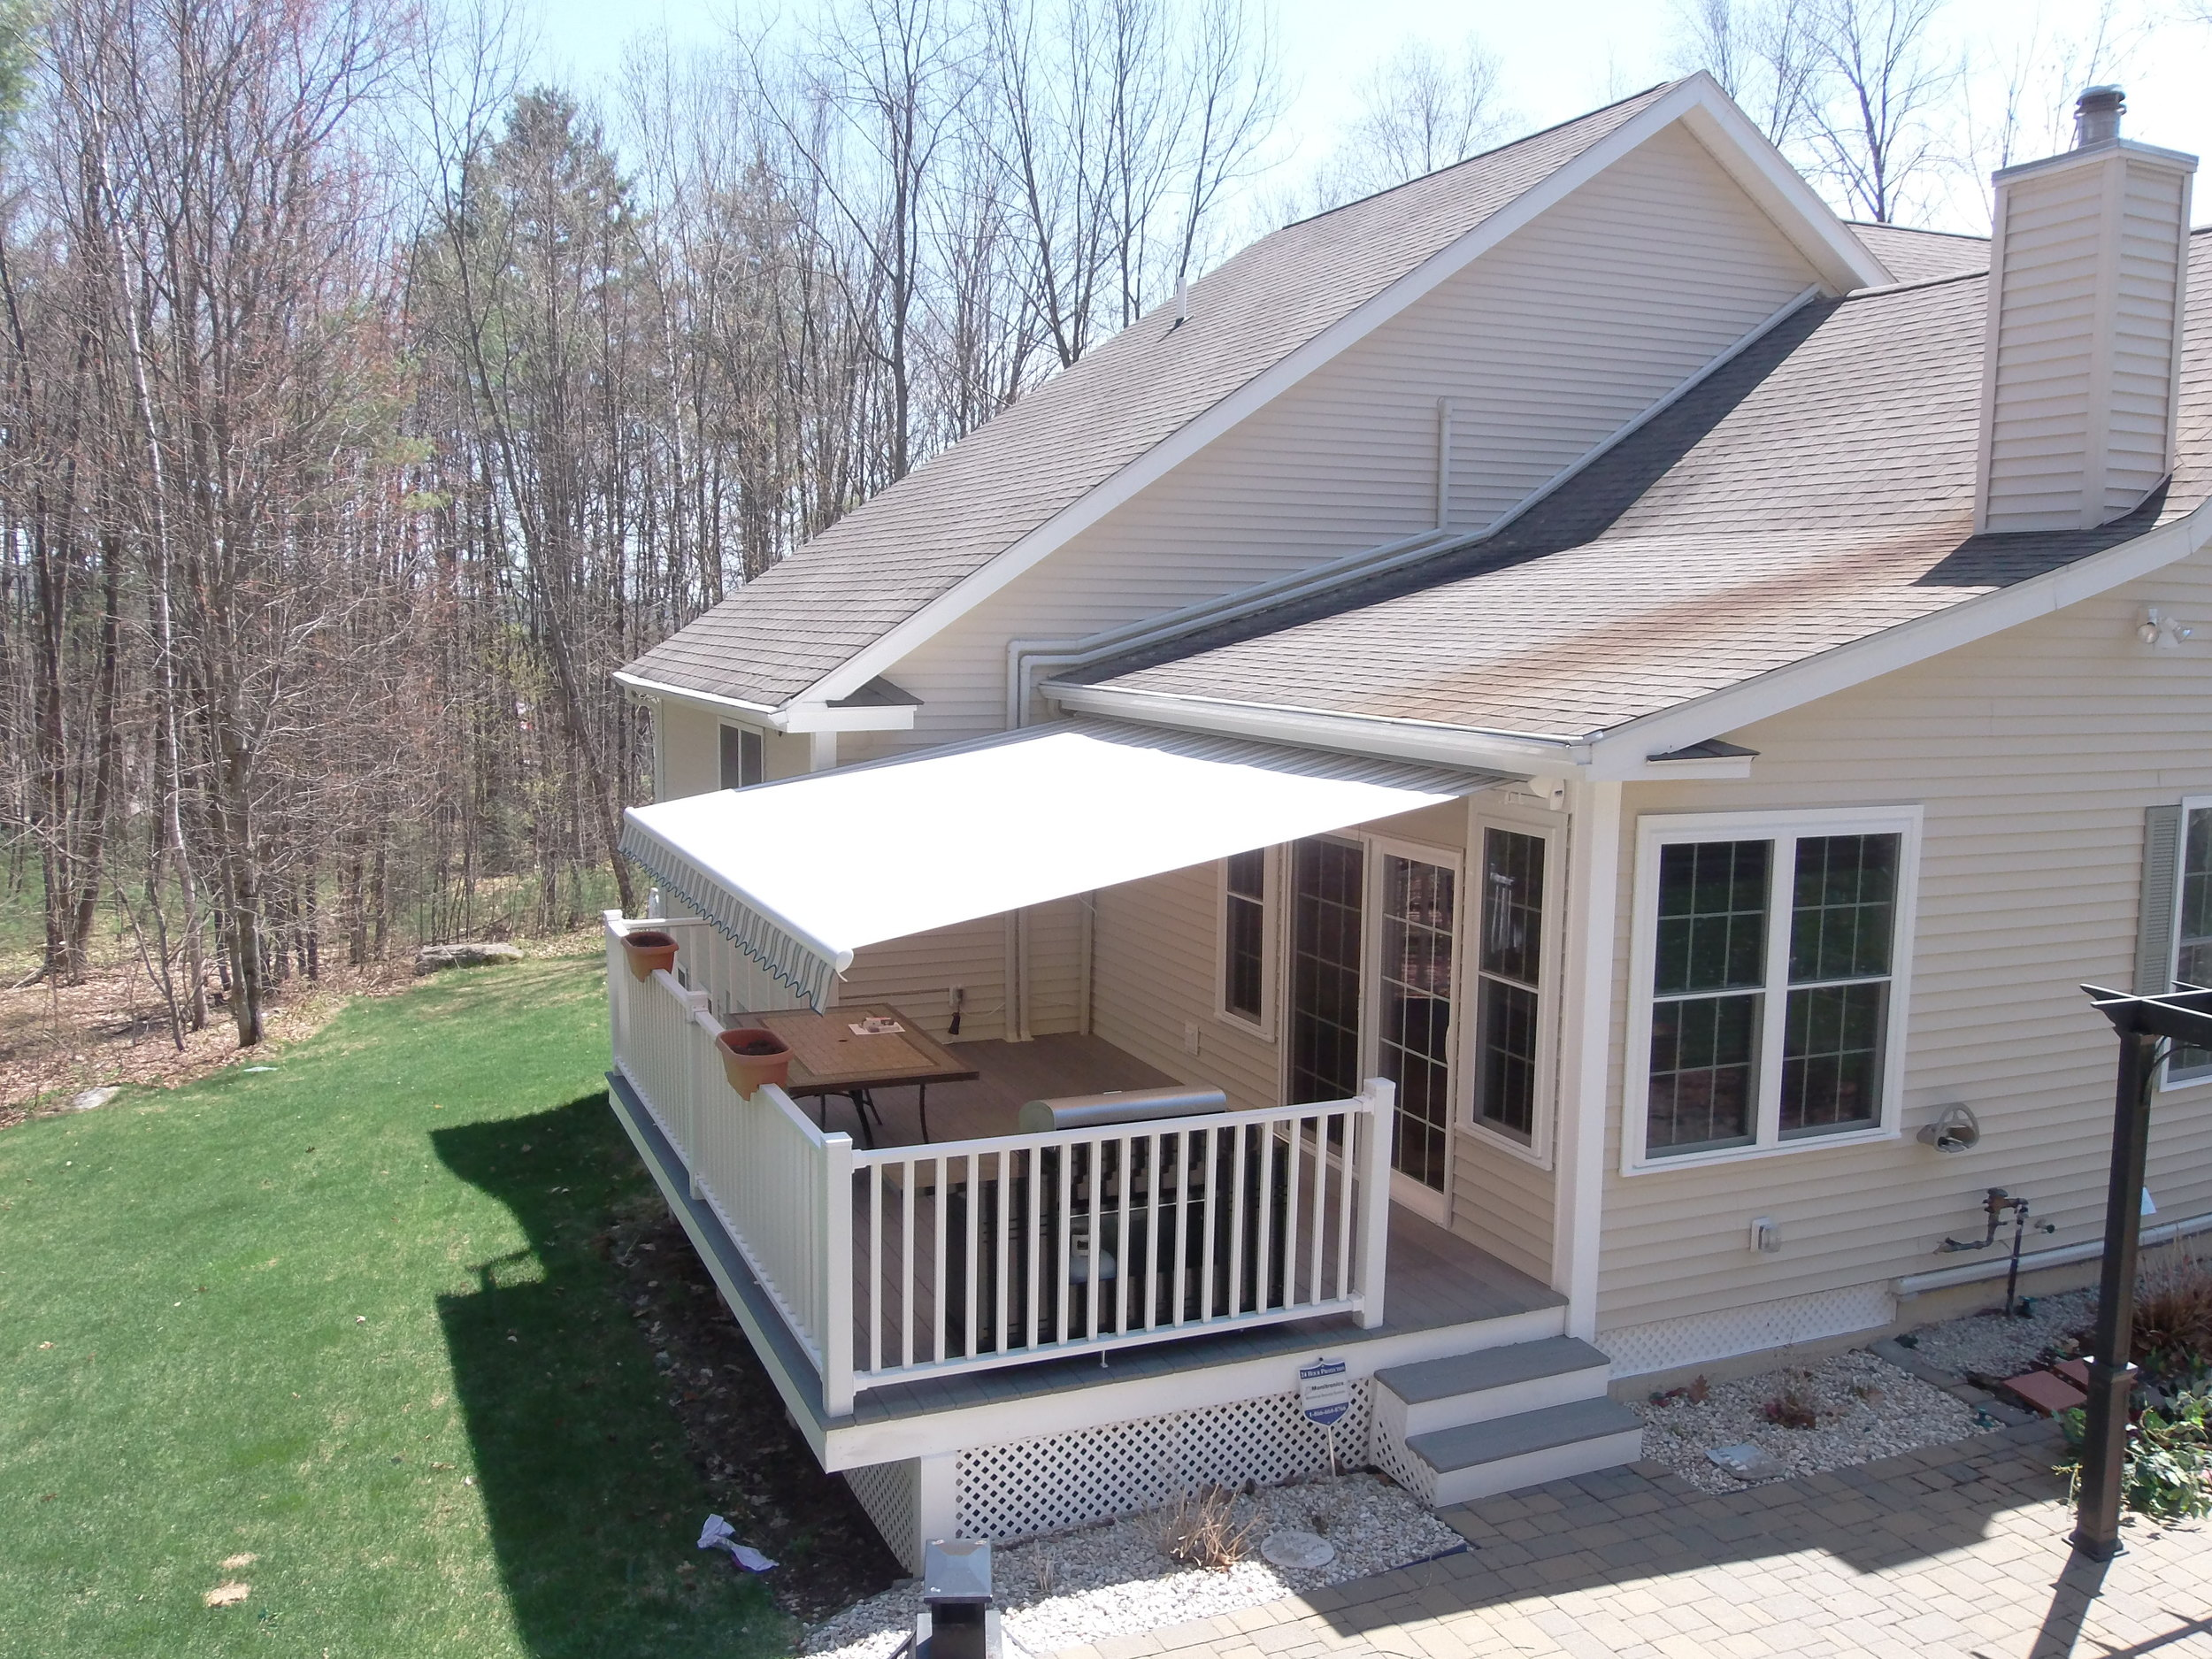 Benefits of an Awning